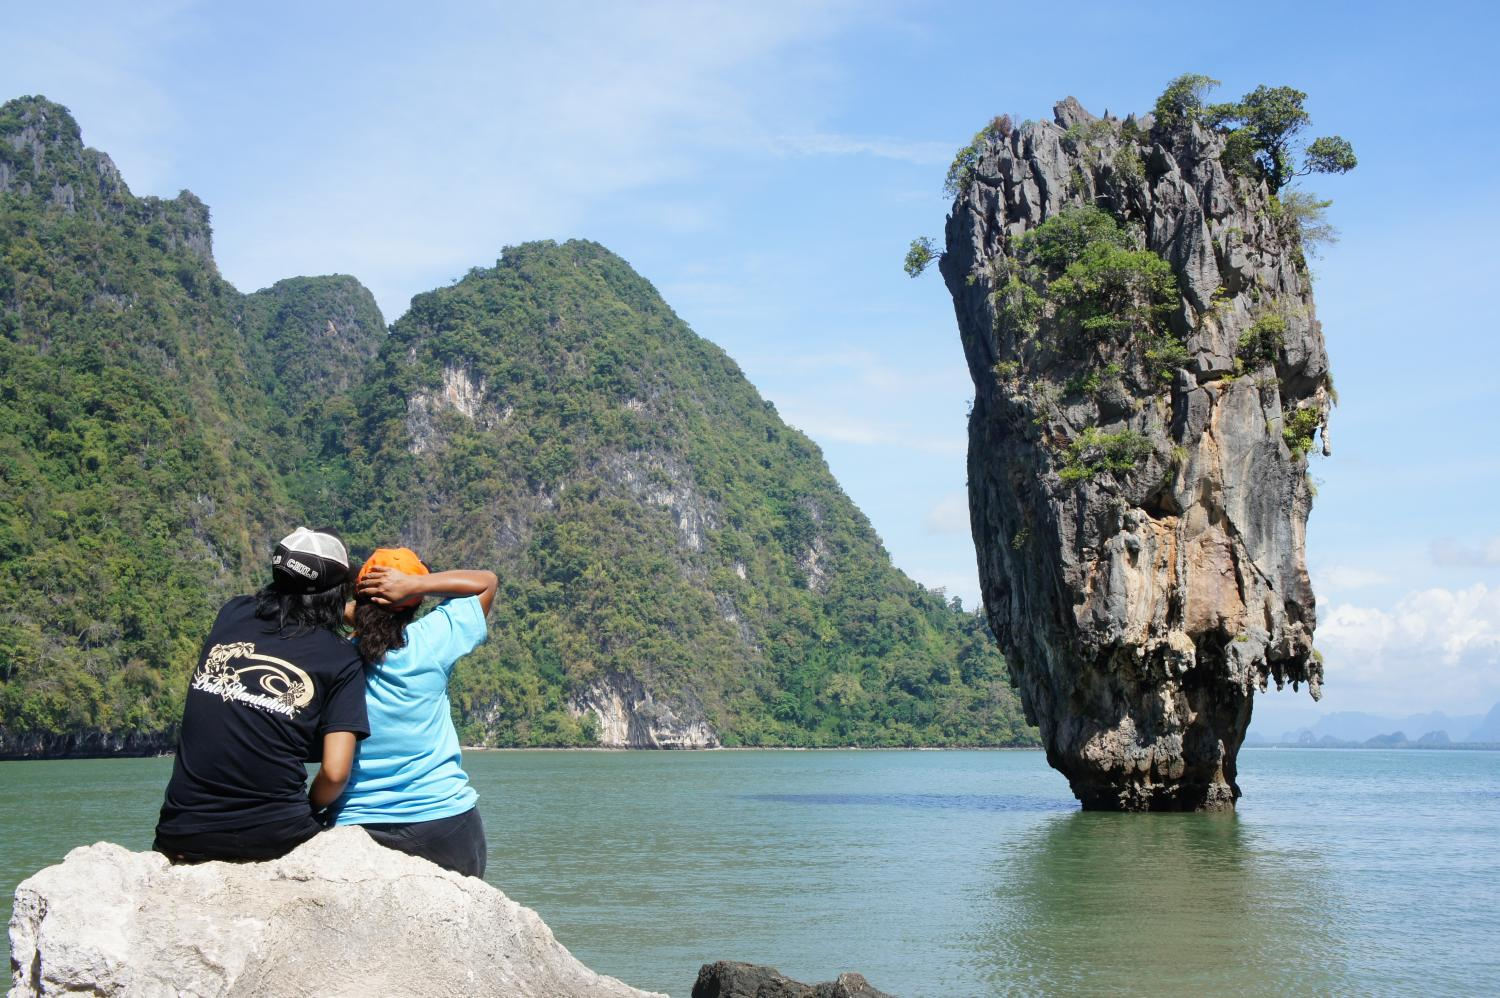 The scenic James Bond island, named after James Bond which was filmed here, is a popular attraction of the Phangnga Bay in Phangnag.